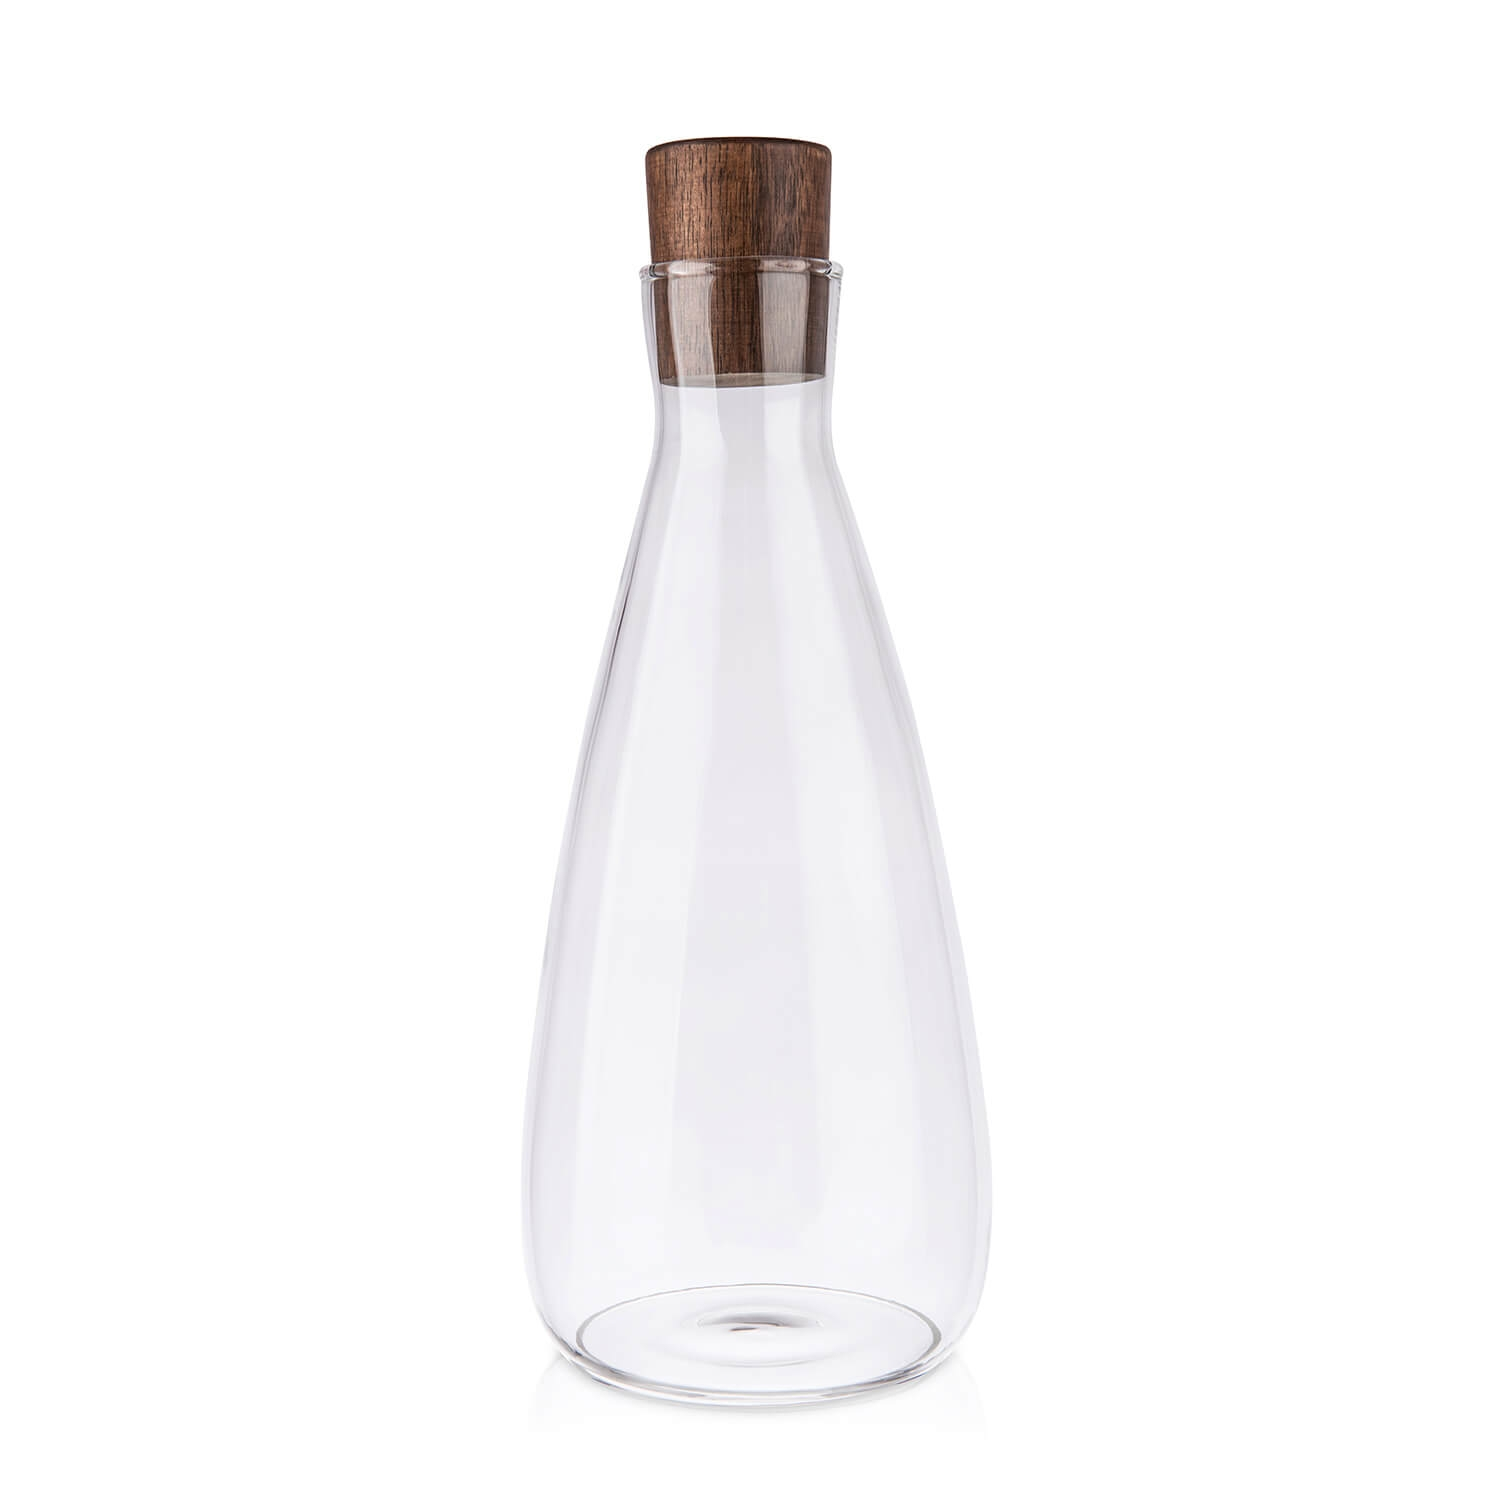 Image of Artisan Street, Glass Carafe, Clear